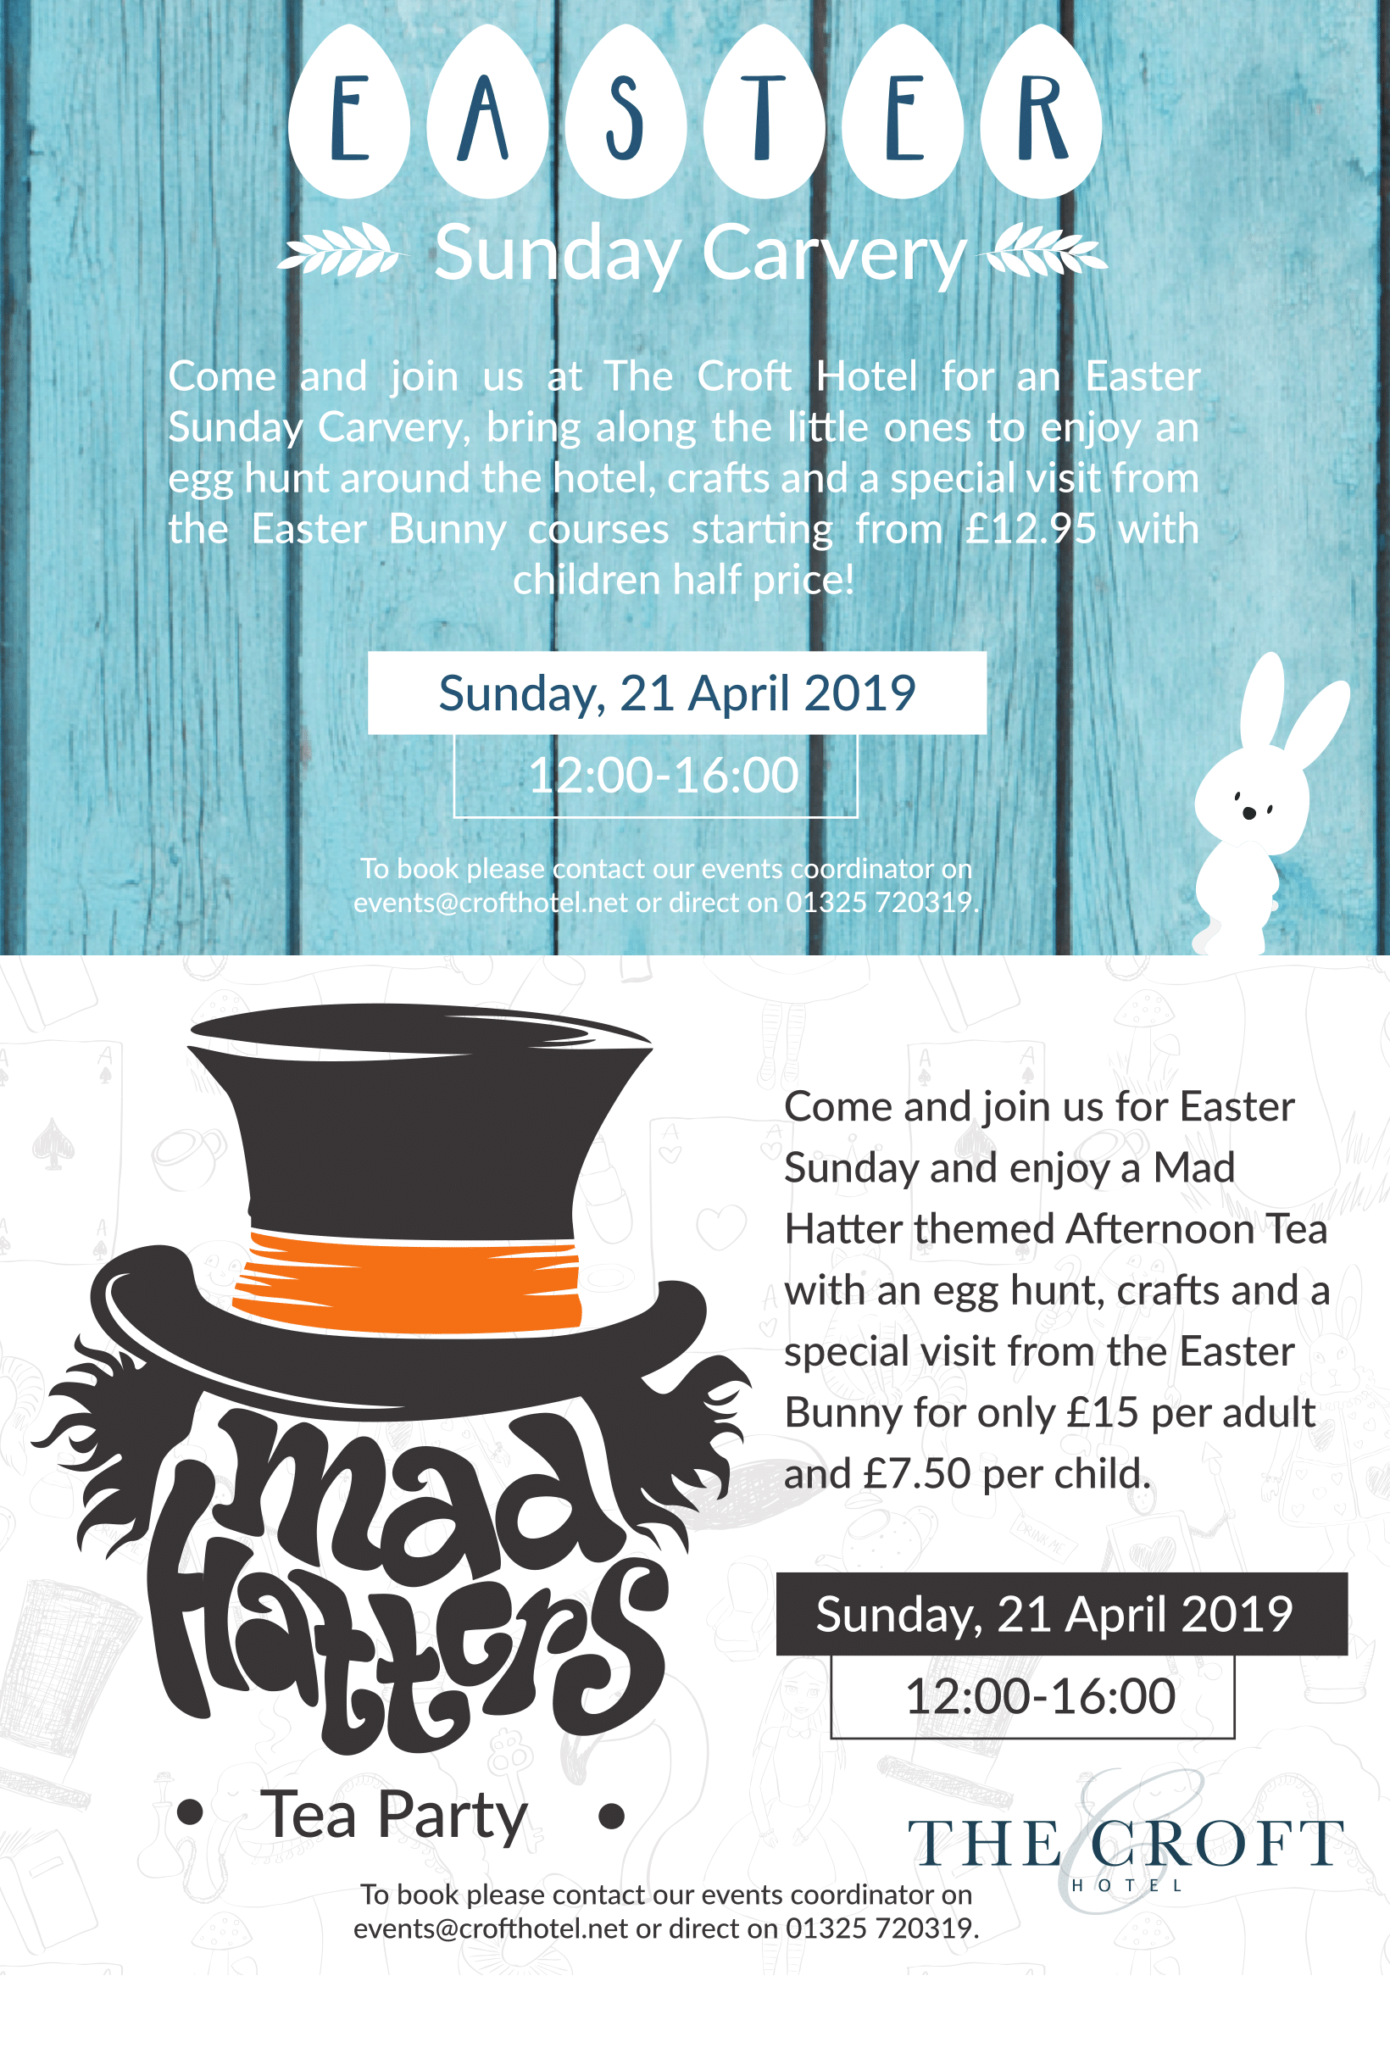 Afternoon tea for easter in Darlington - The Croft Hotel